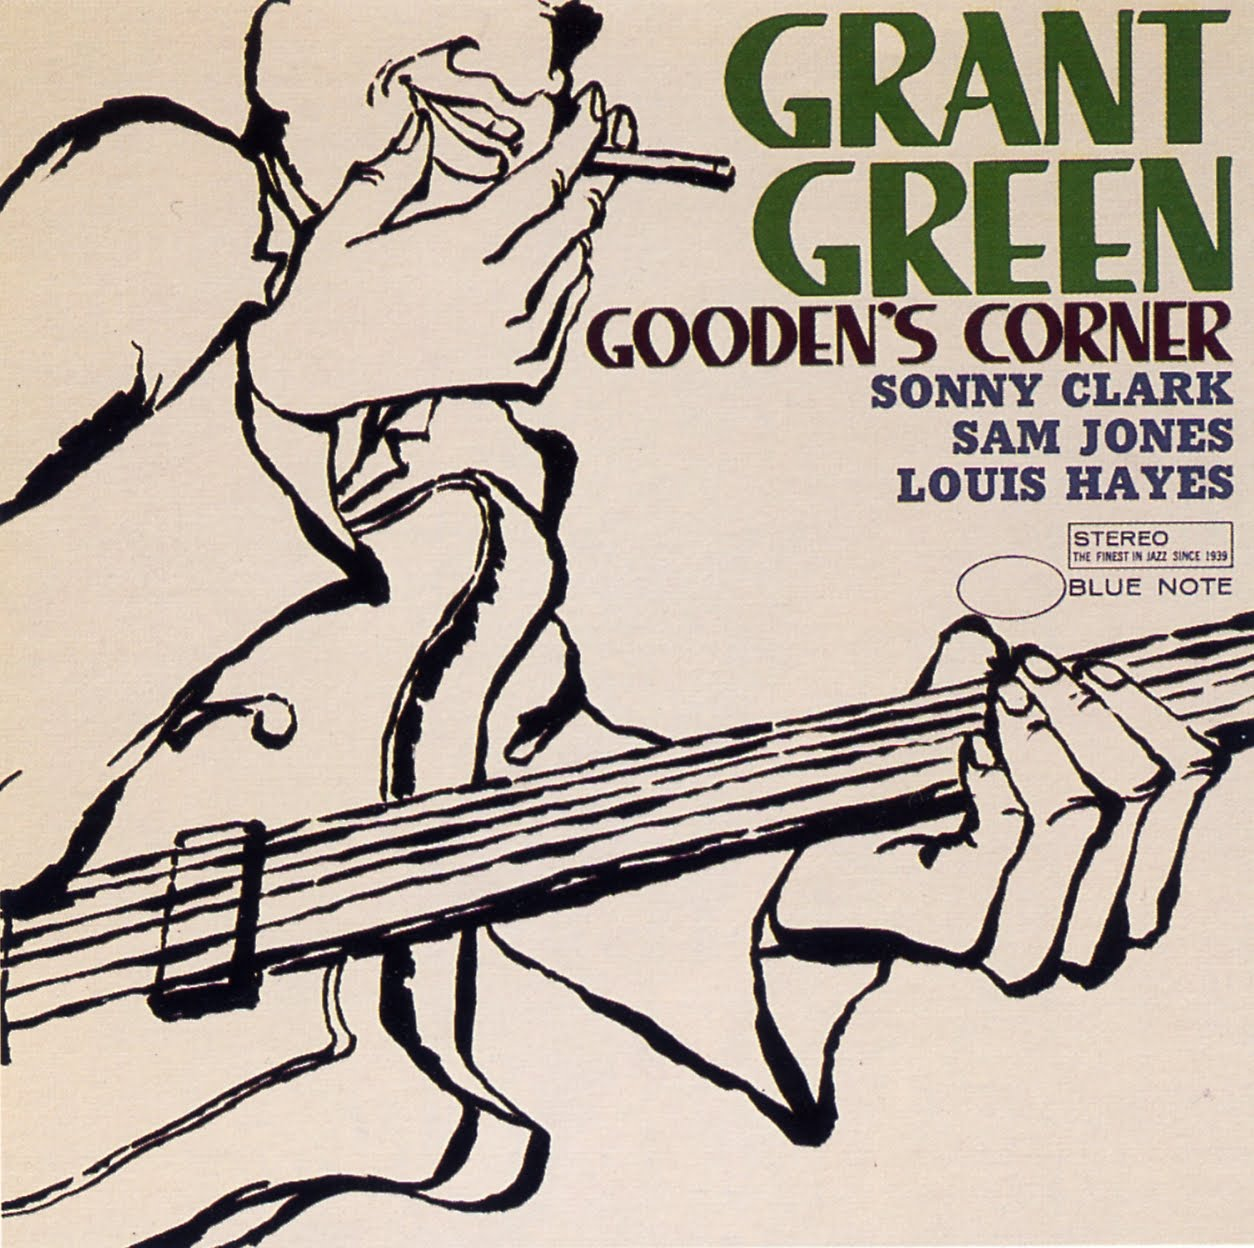 grant green - gooden's corner (sleeve art)